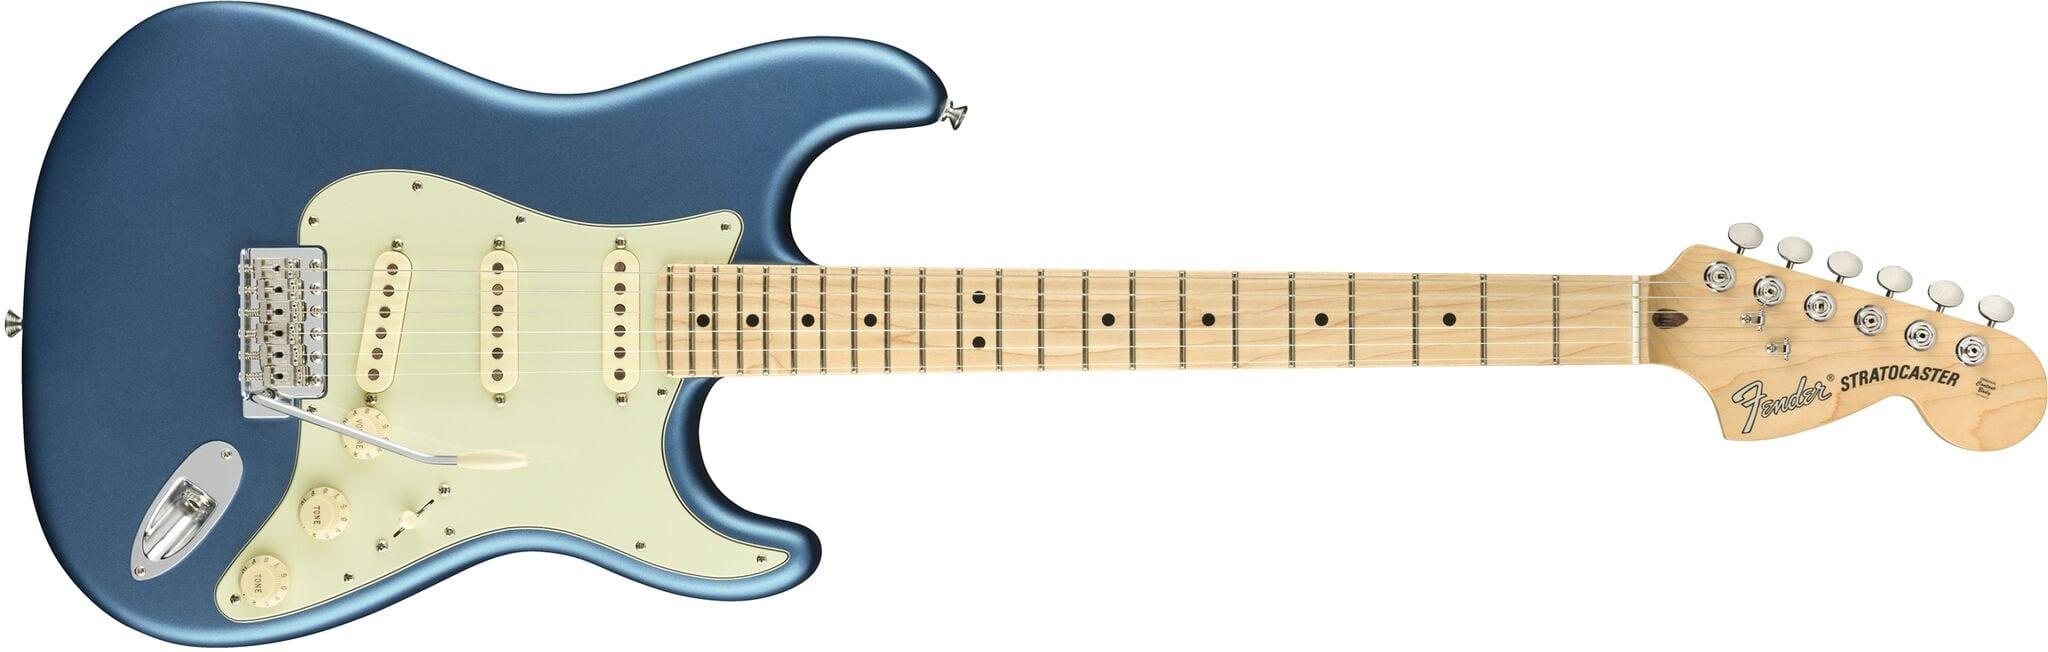 Fender American Performer Series Stratocaster